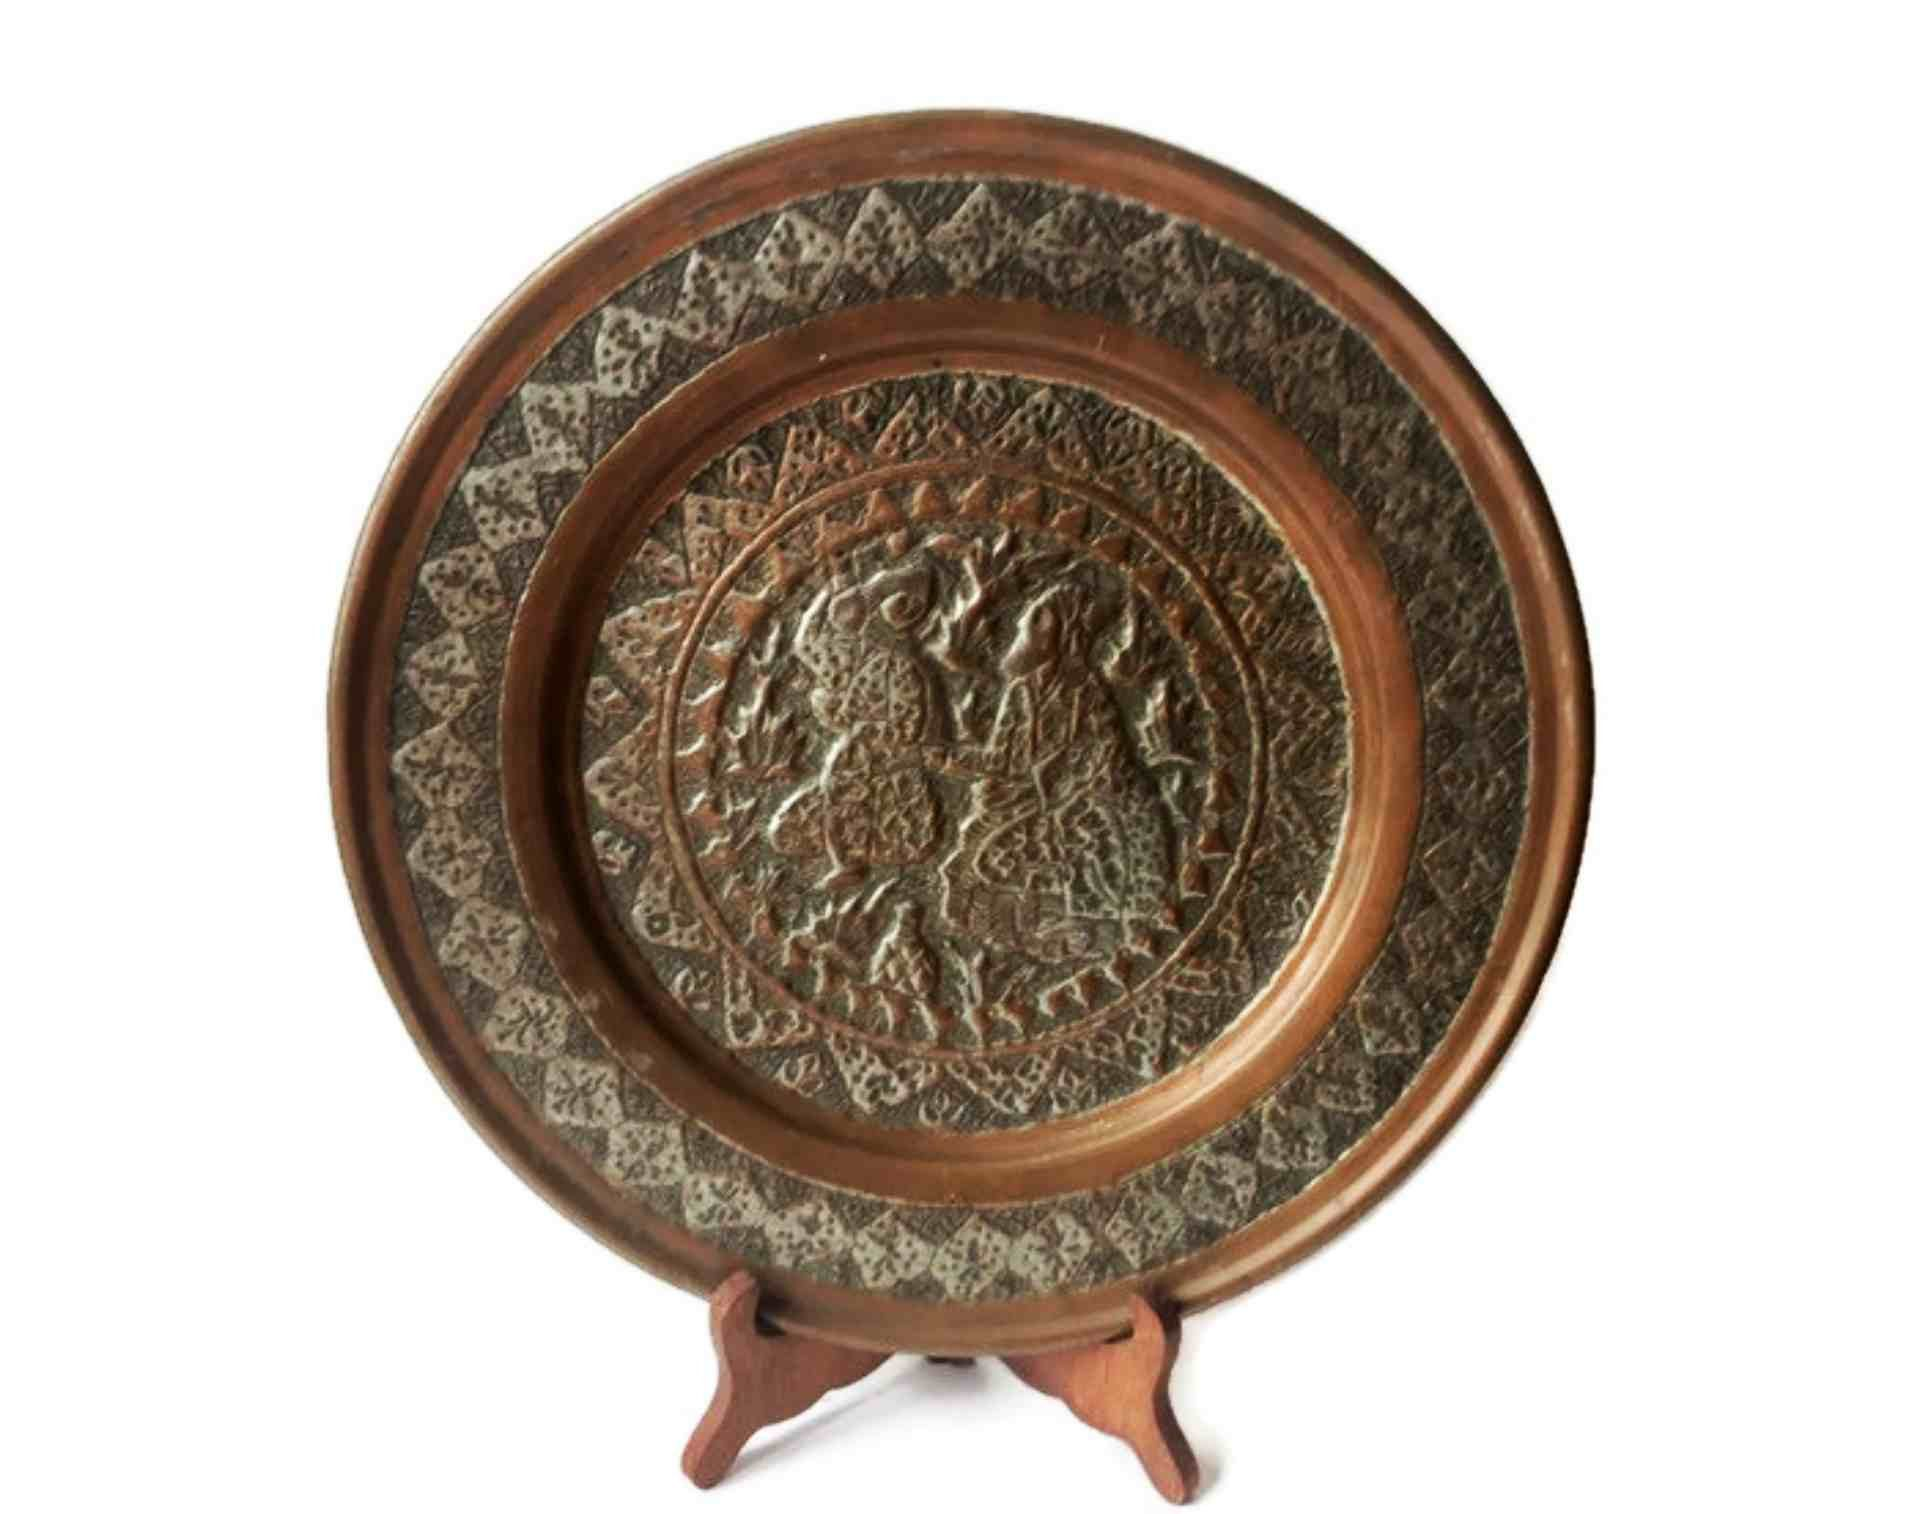 Antique Persian Middle Eastern Hand Chased Copper Plate Wall Etsy Plates On Wall Plate Display Copper Plated